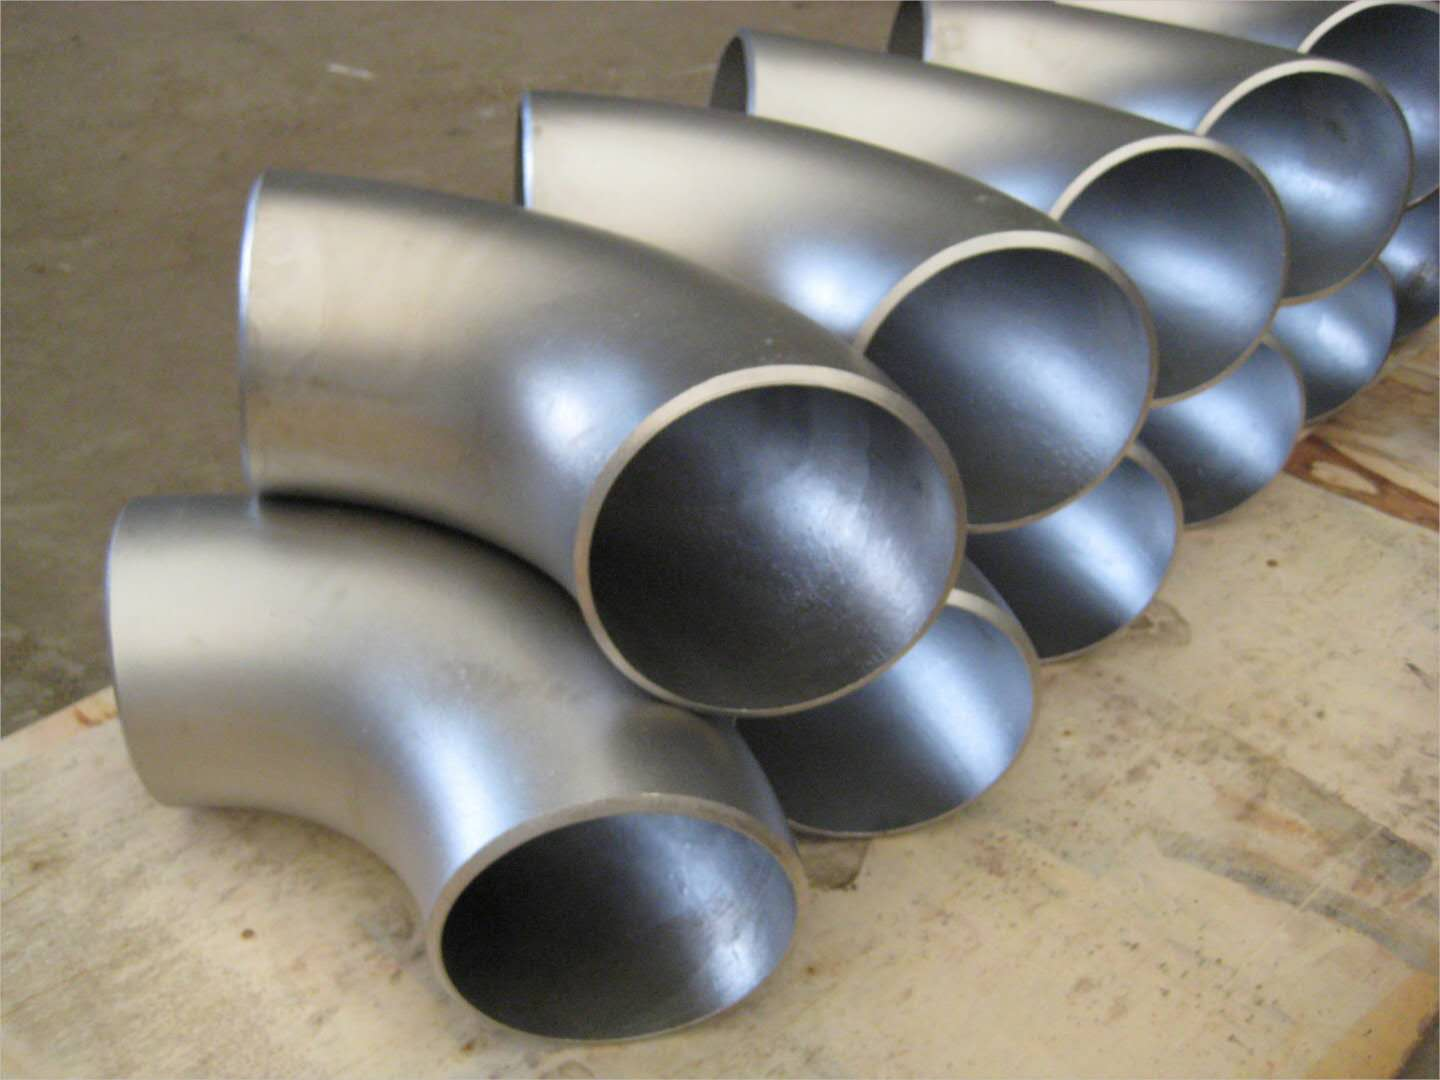 Top quality stainless steel 304 schdule 80 bulkhead elbow